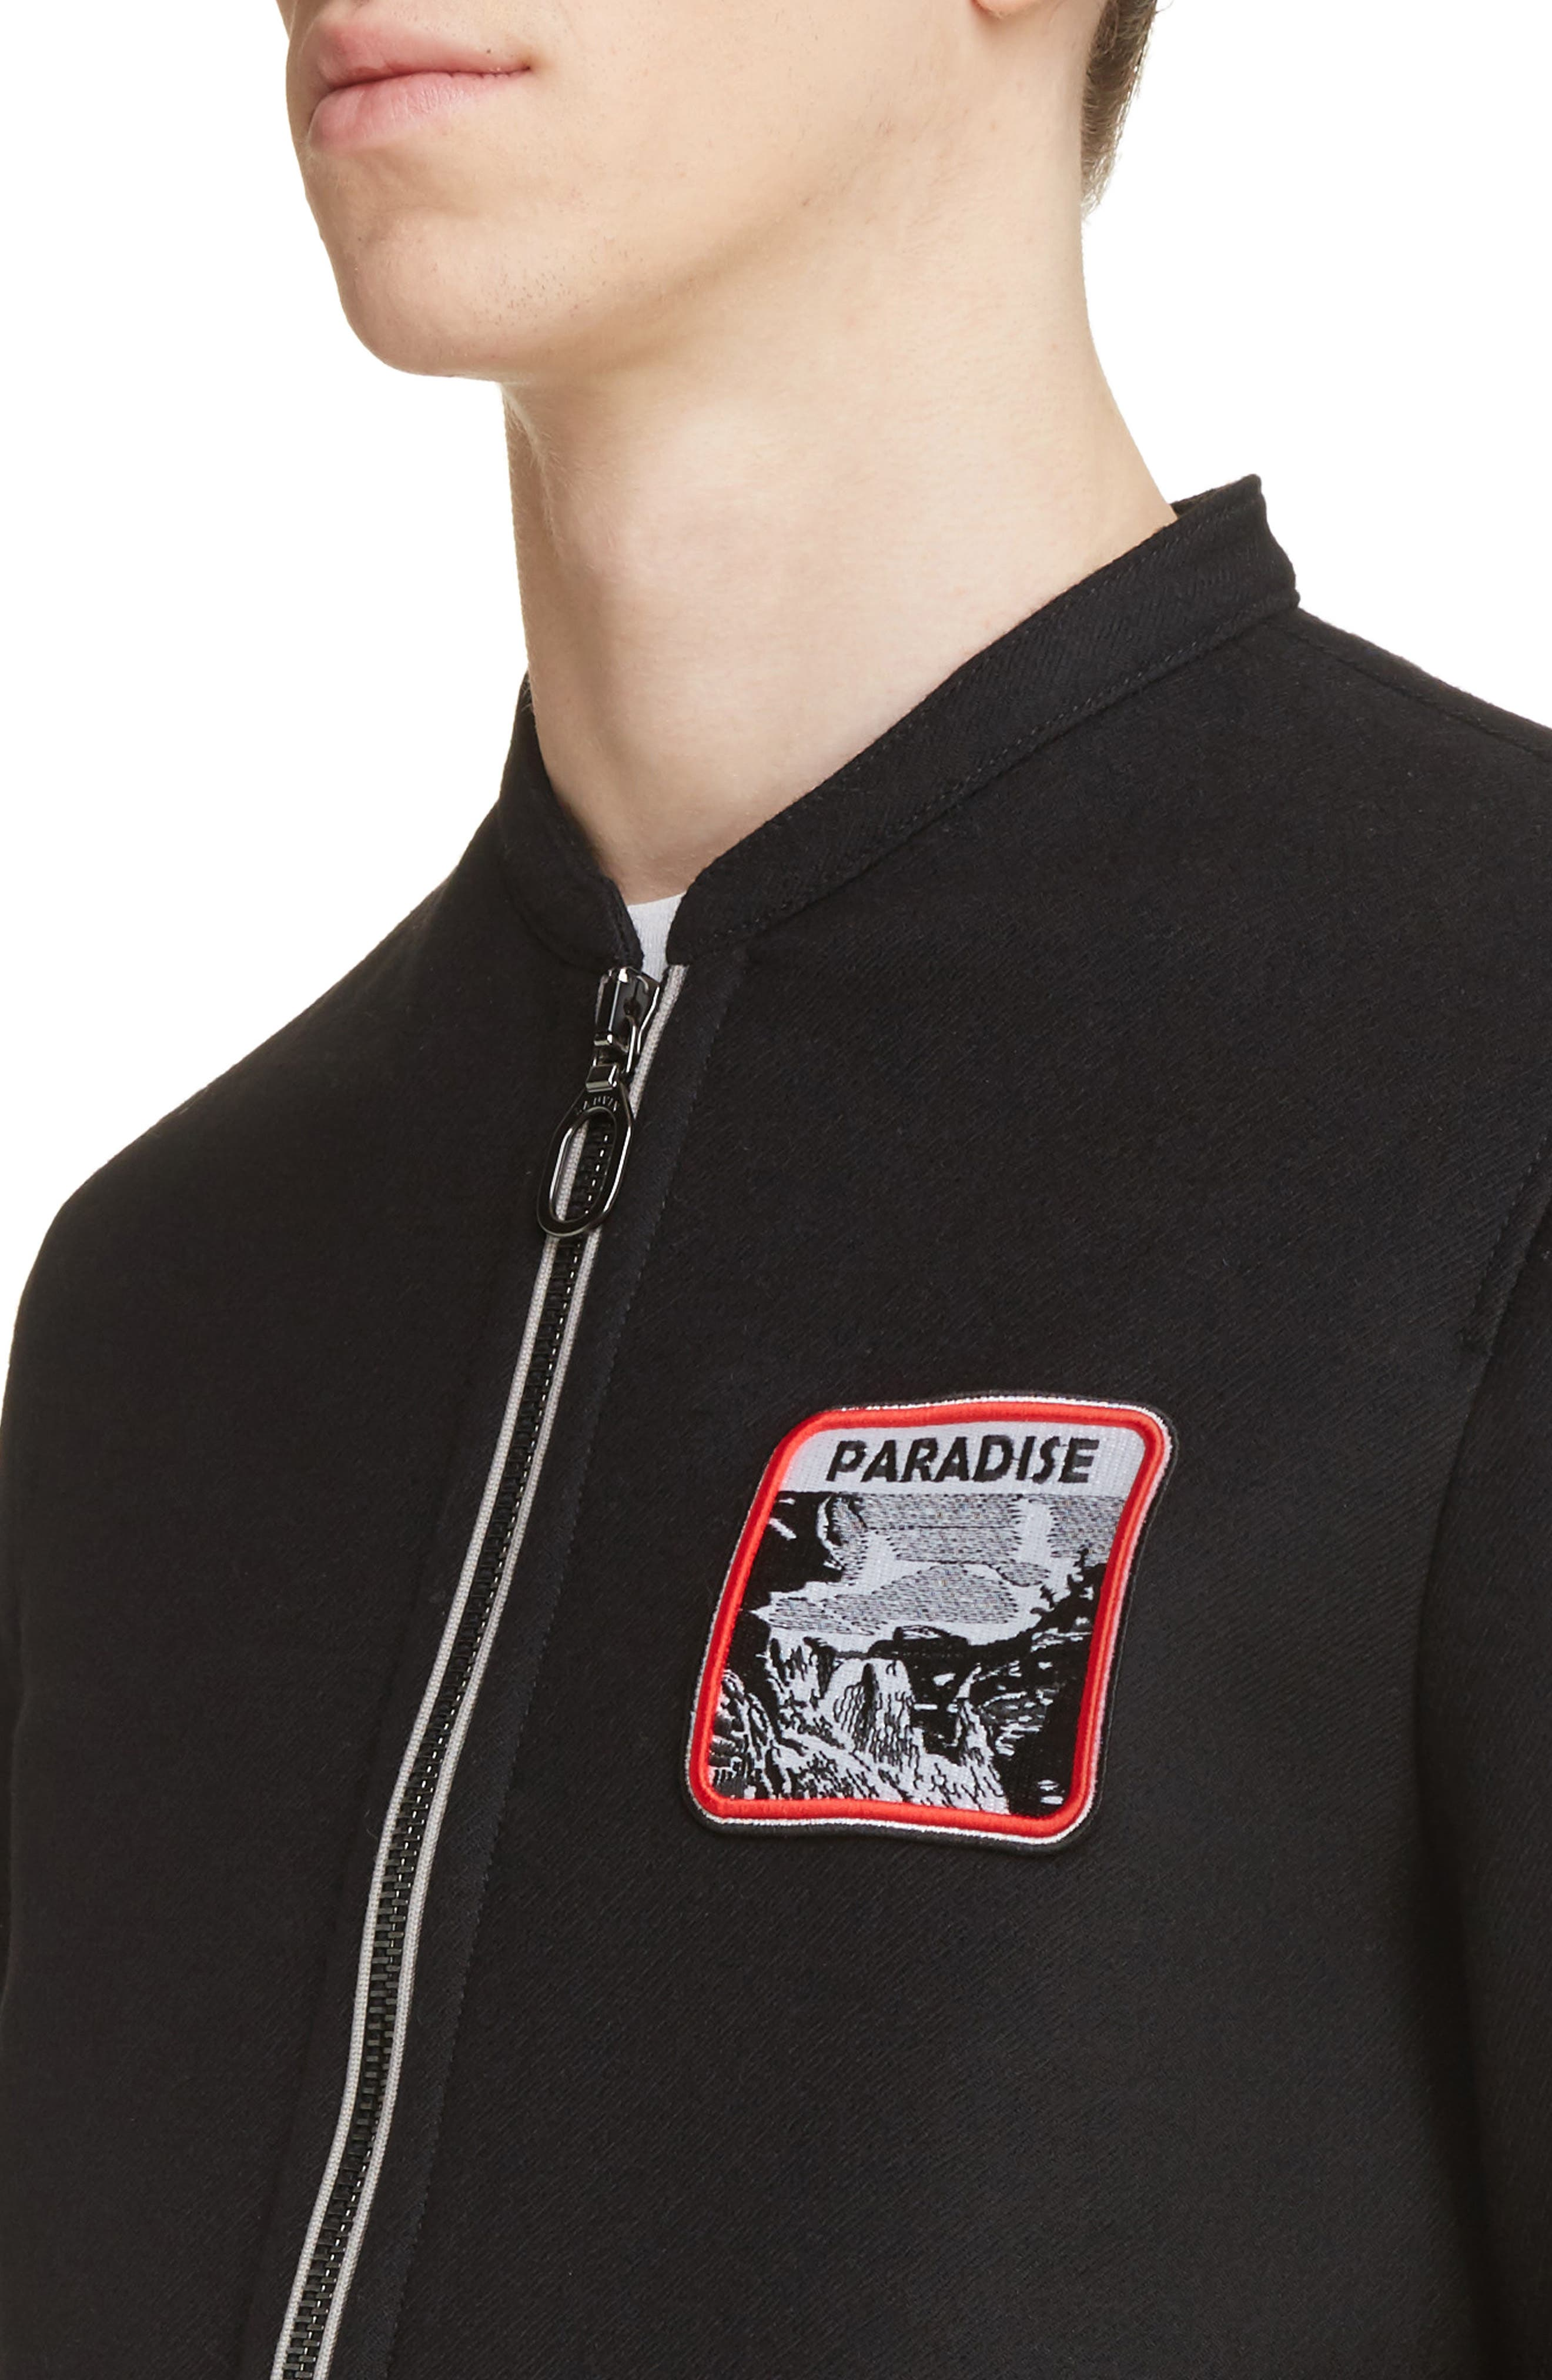 Alternate Image 4  - Lanvin Paradise Patch Bomber Jacket